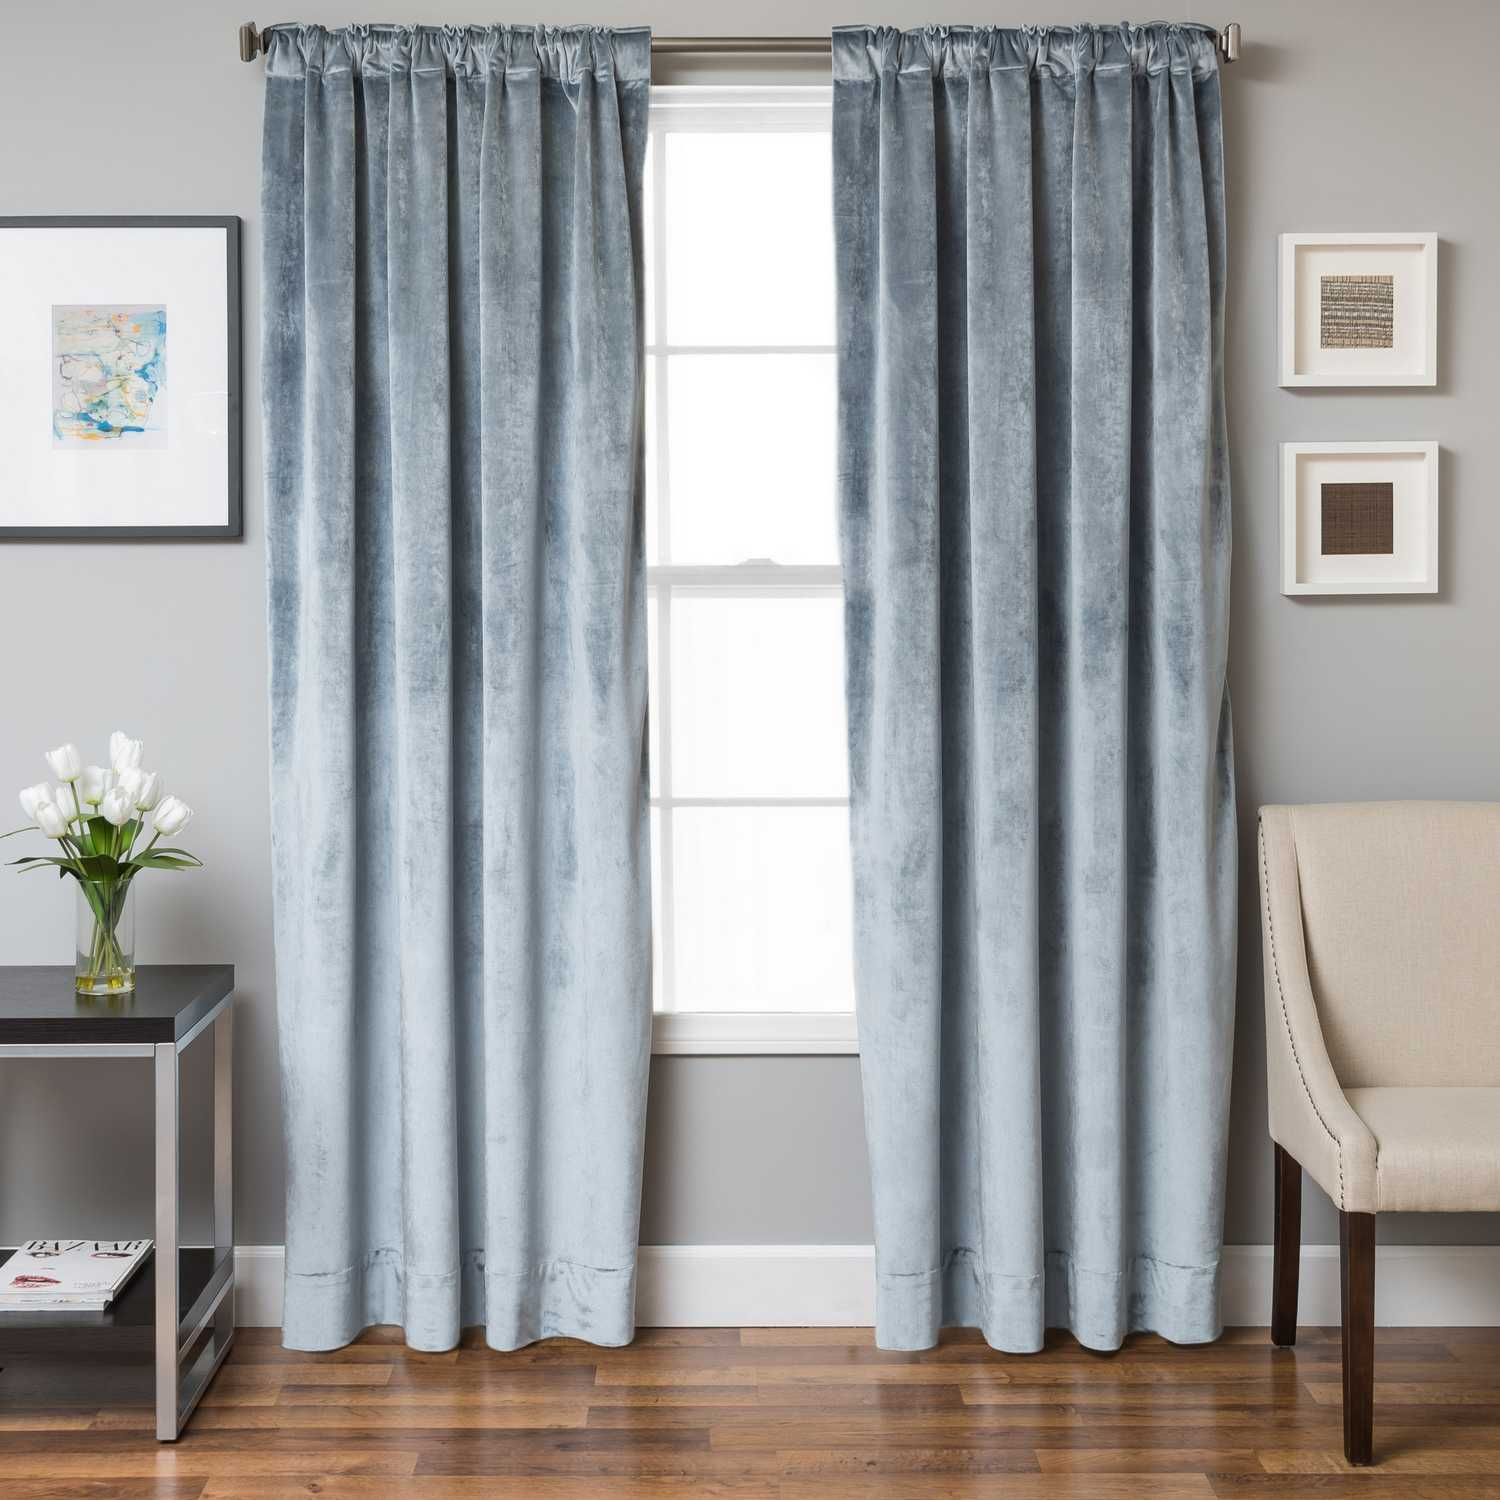 Softline home fashions drapery terni solid panel - Benefits of light colored upholstery and curtains ...